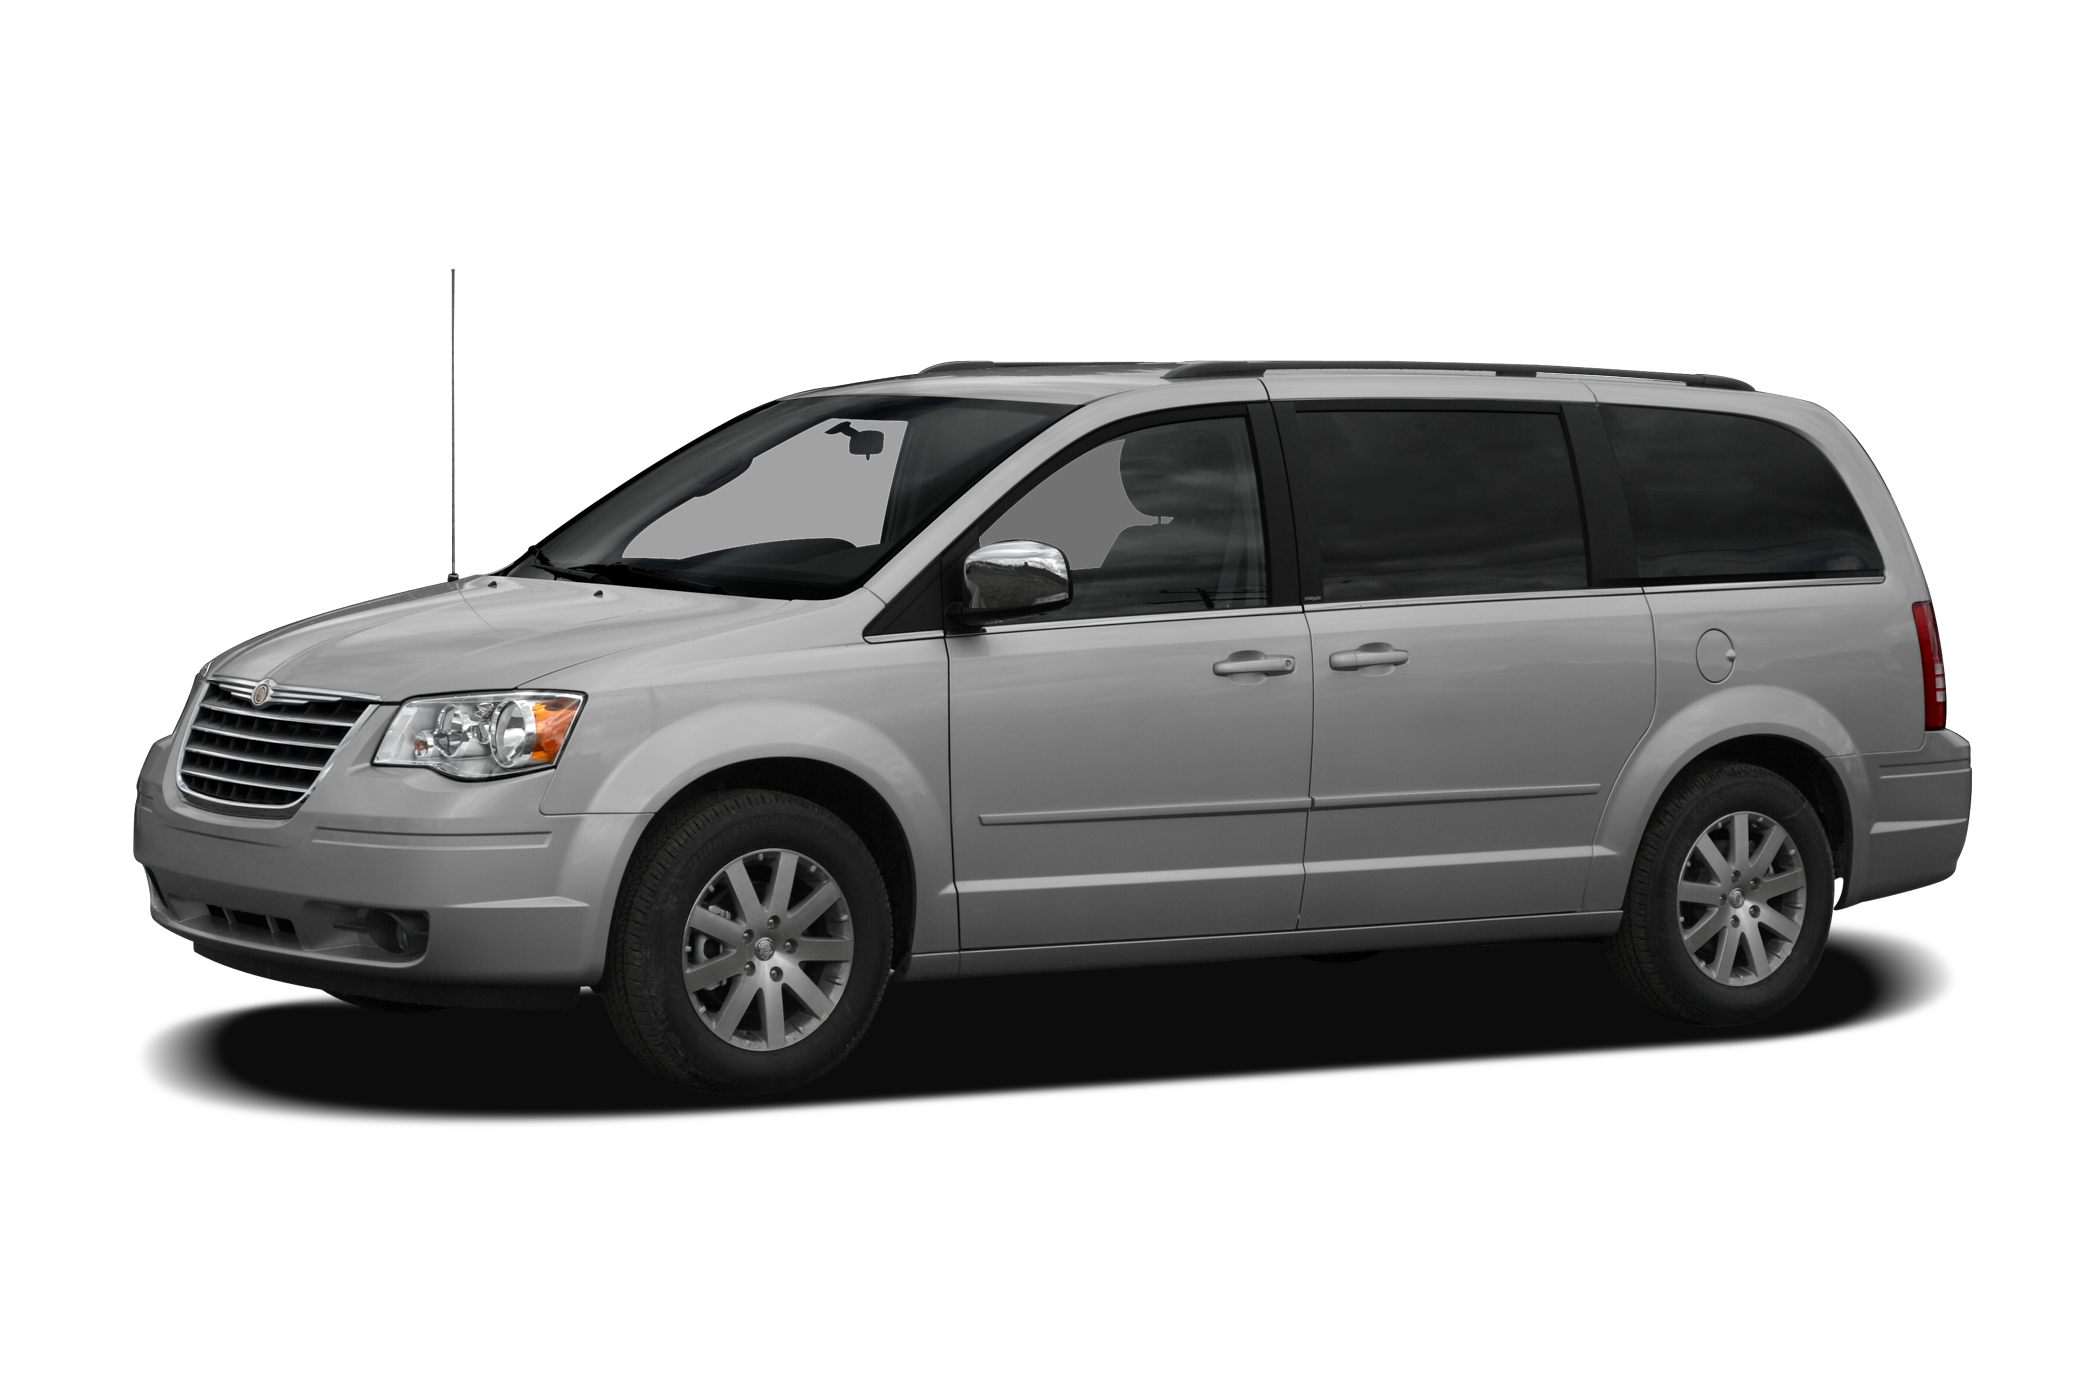 price lx wheel drive town chrysler minivan country reviews van photo and lwb passenger front photos features